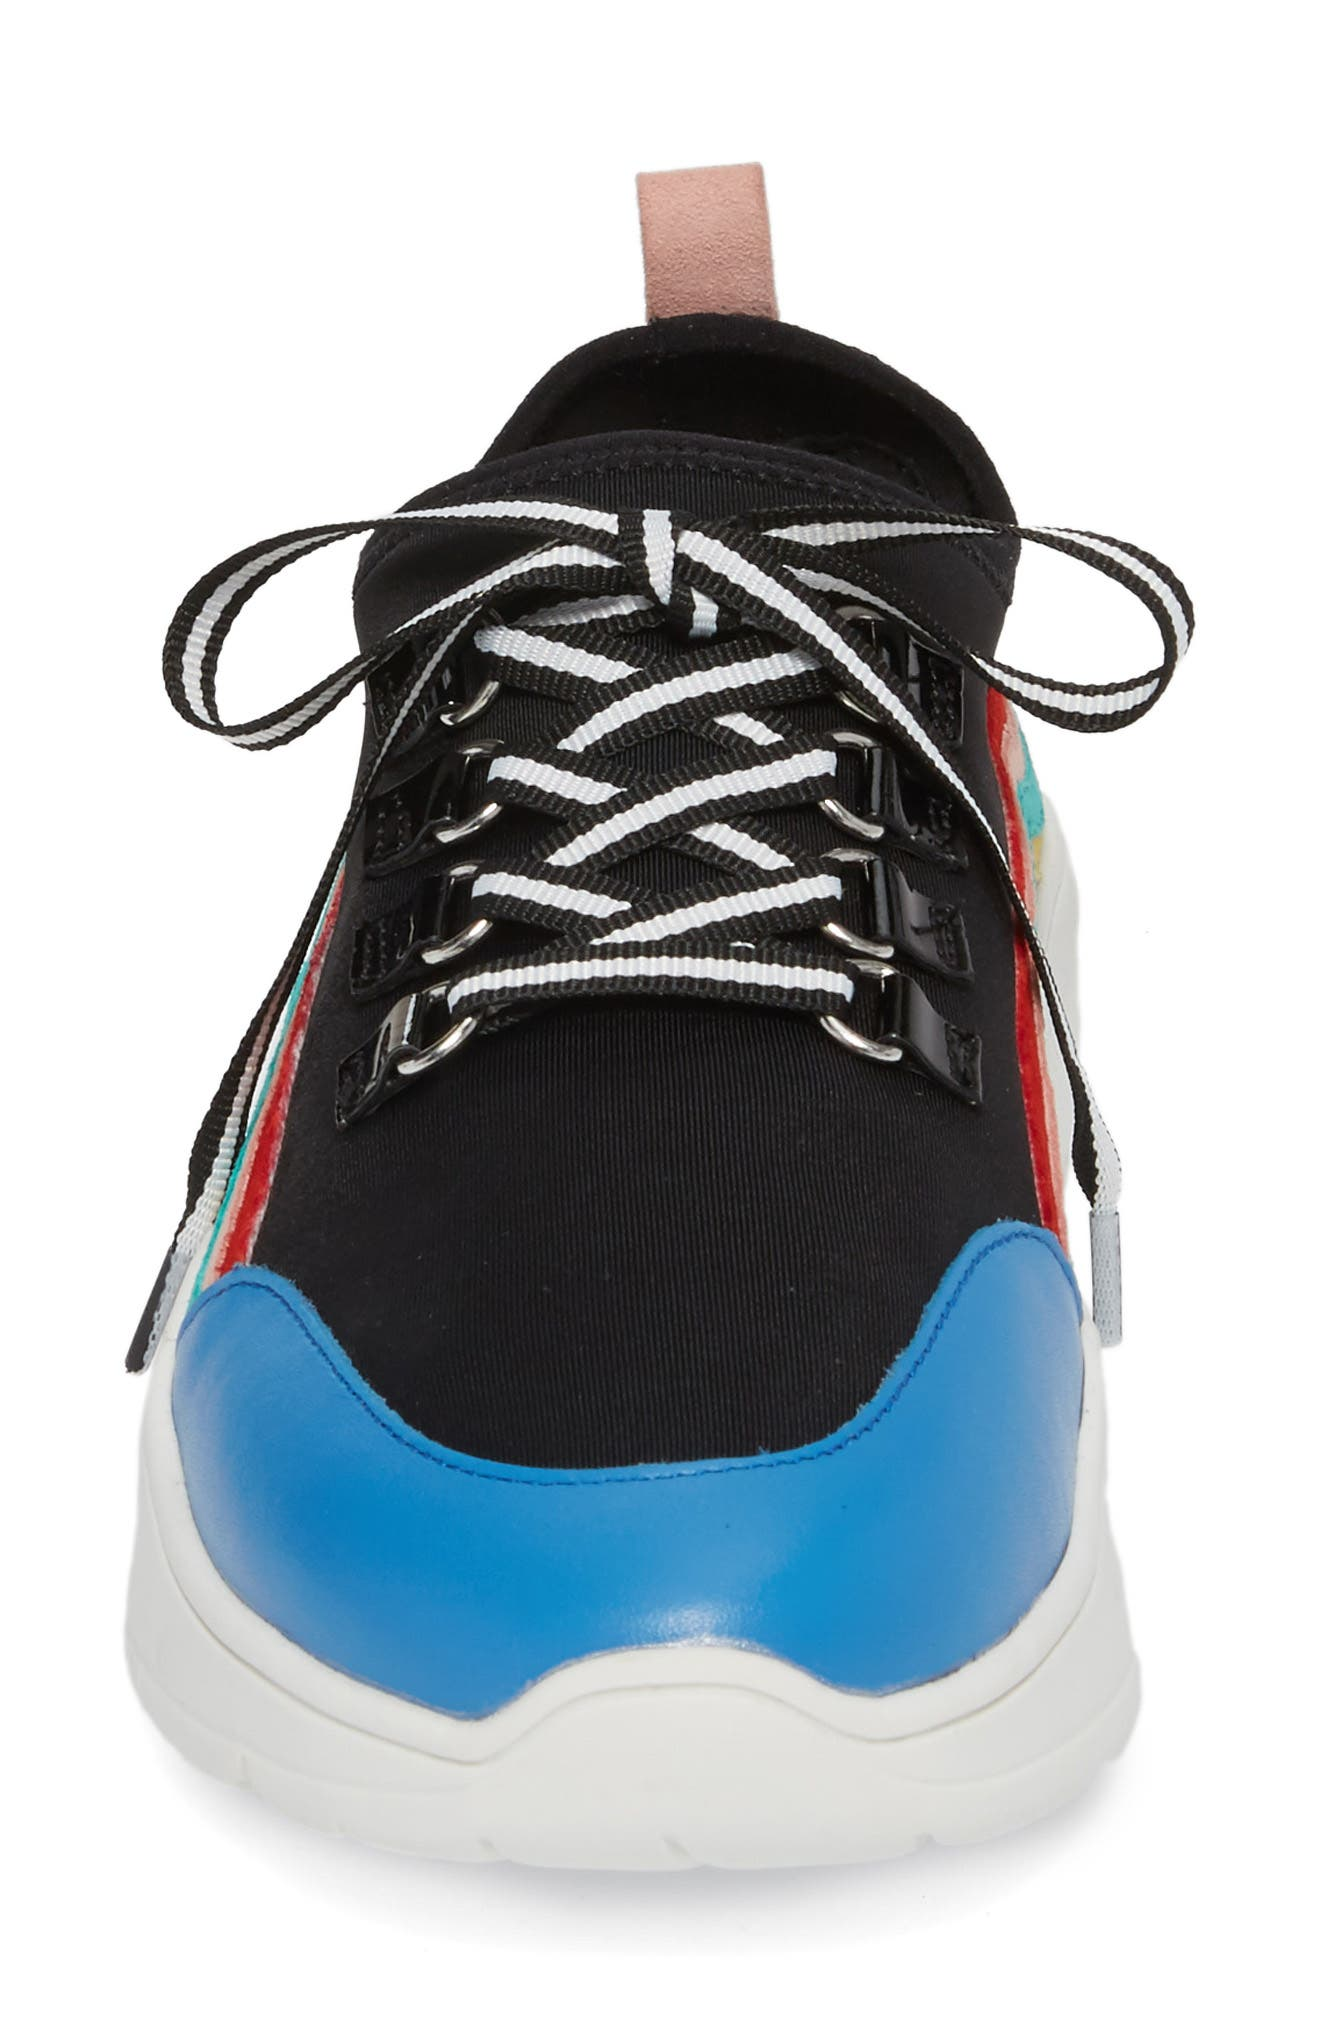 Cavo Rainbow Sneaker,                             Alternate thumbnail 4, color,                             015